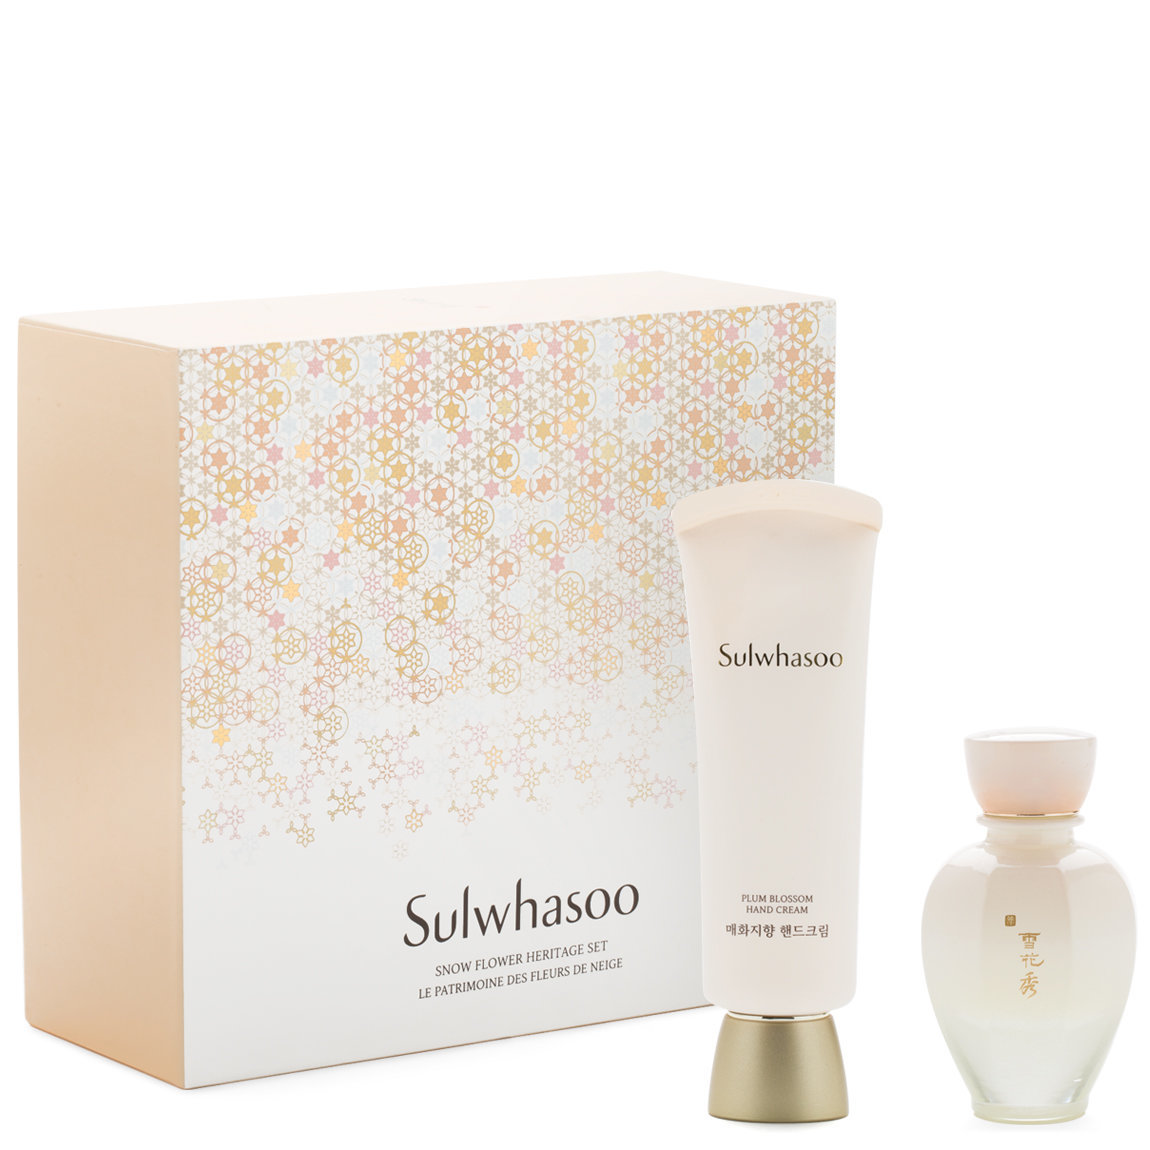 Sulwhasoo Snow Flower Heritage Set product smear.